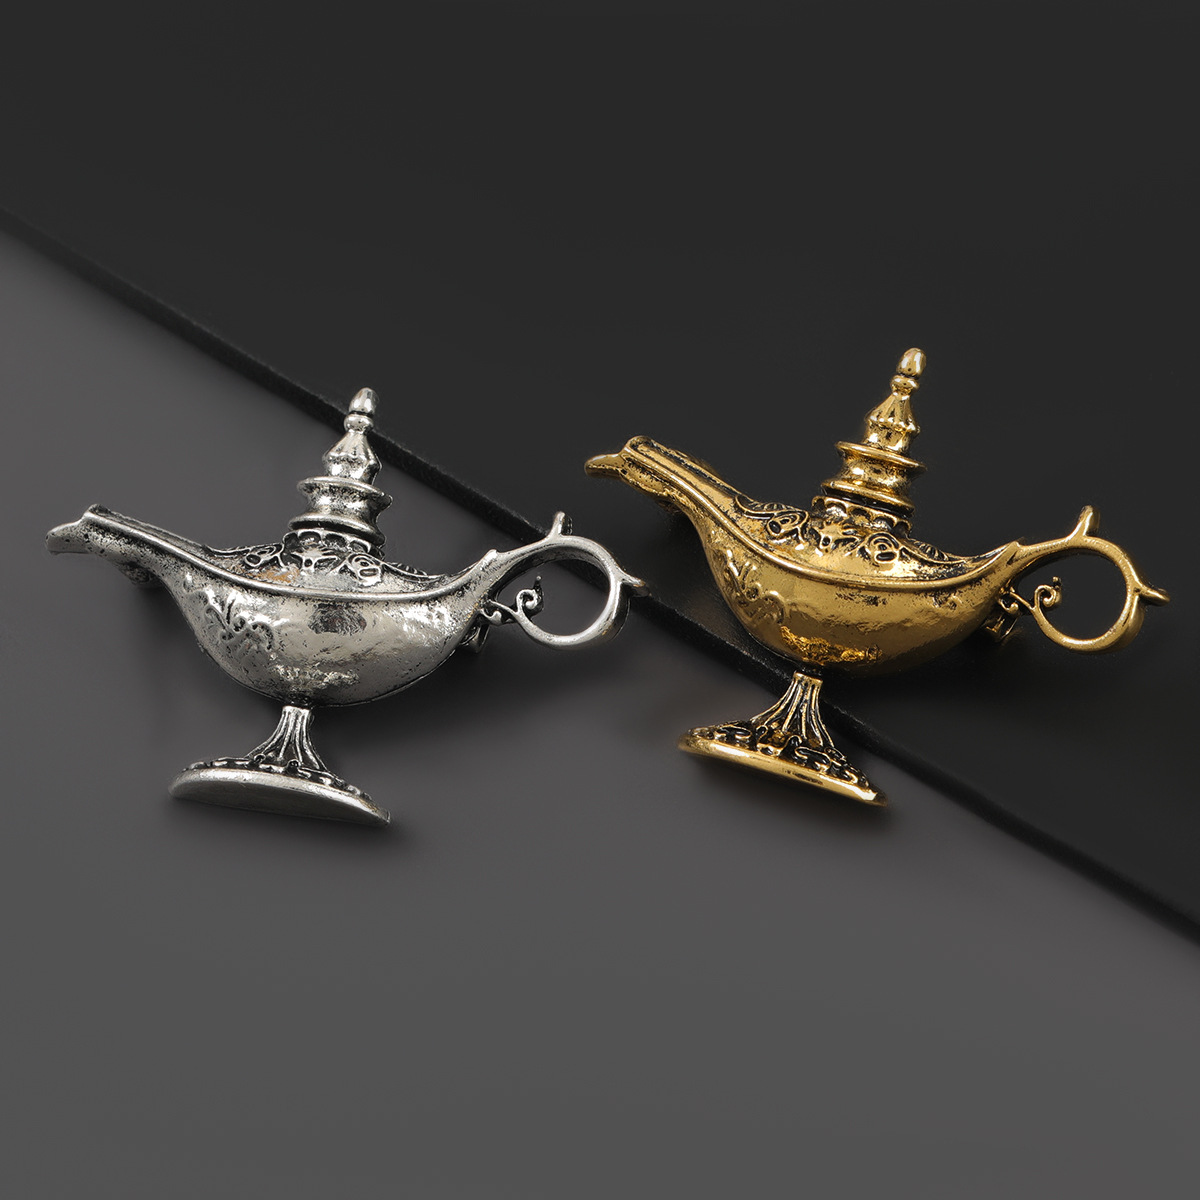 2021 New Fashion Metal Retro Magic Lamp Brooch Female Pin Creative Popular Brooch Jewelry Accessories